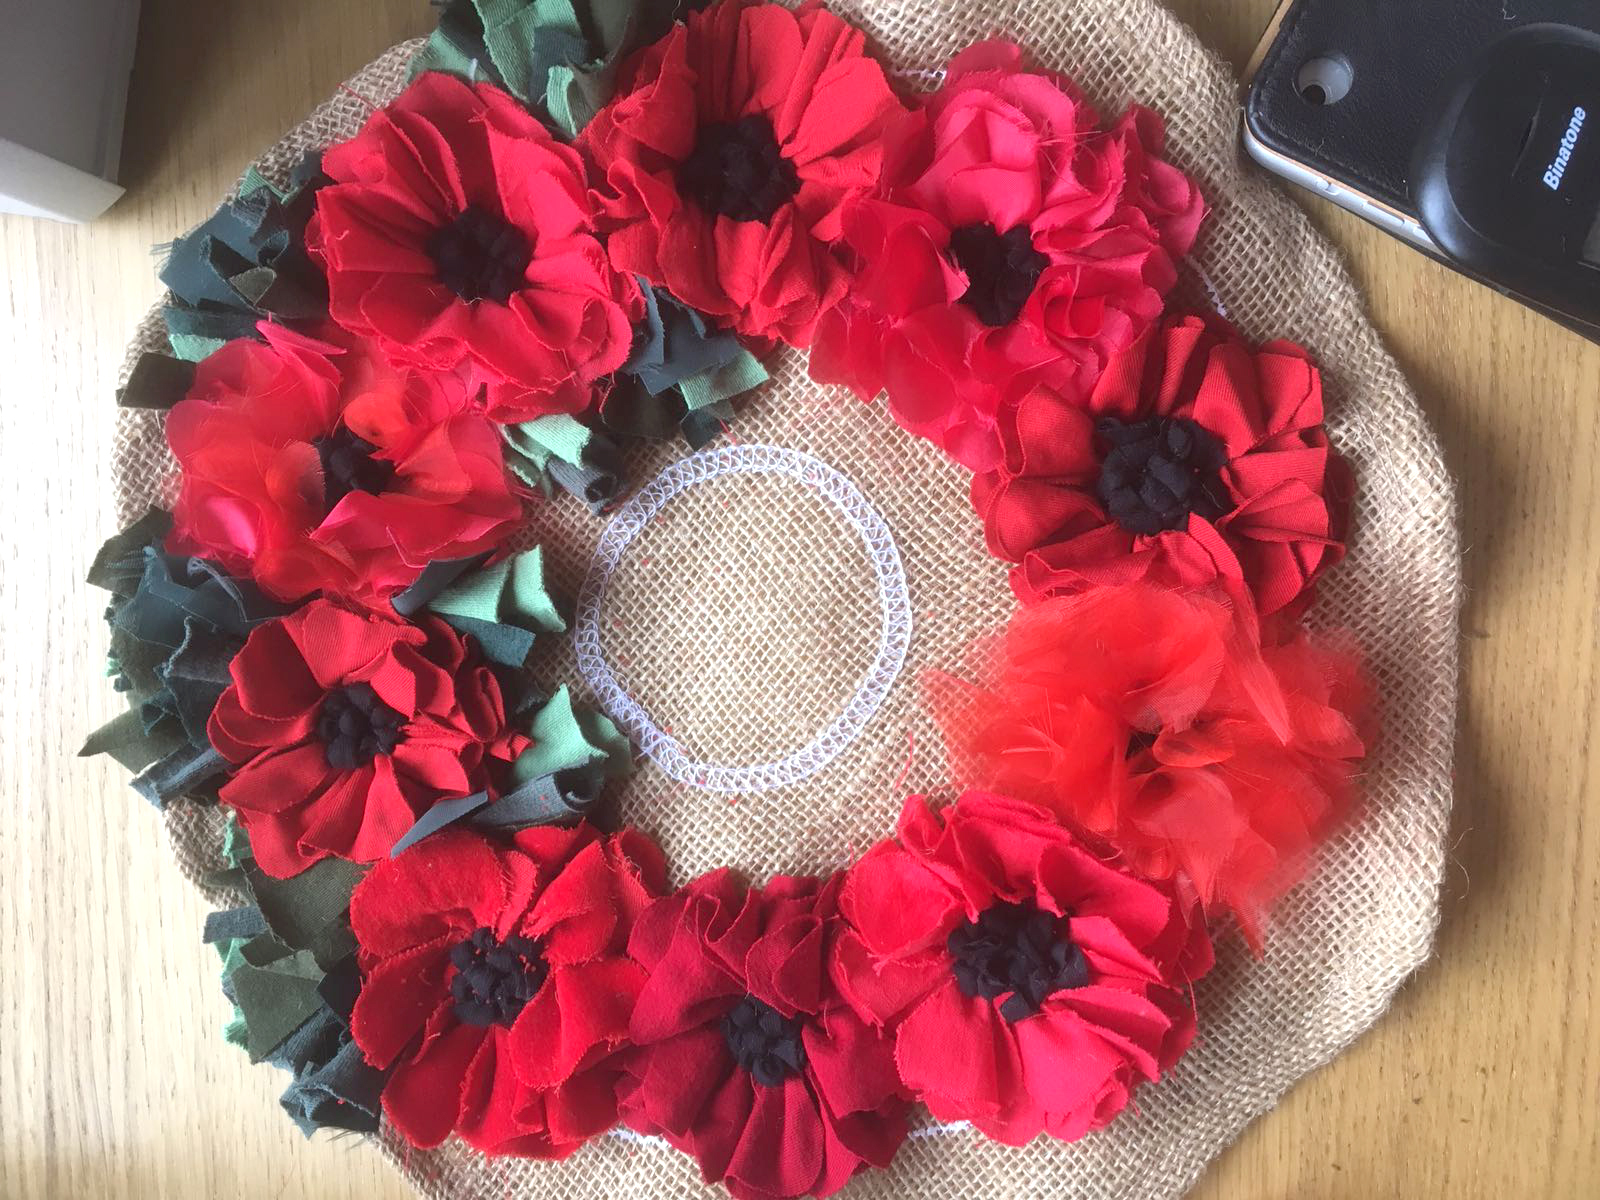 WWI centenary handmade poppy wreath for Remembrance Day